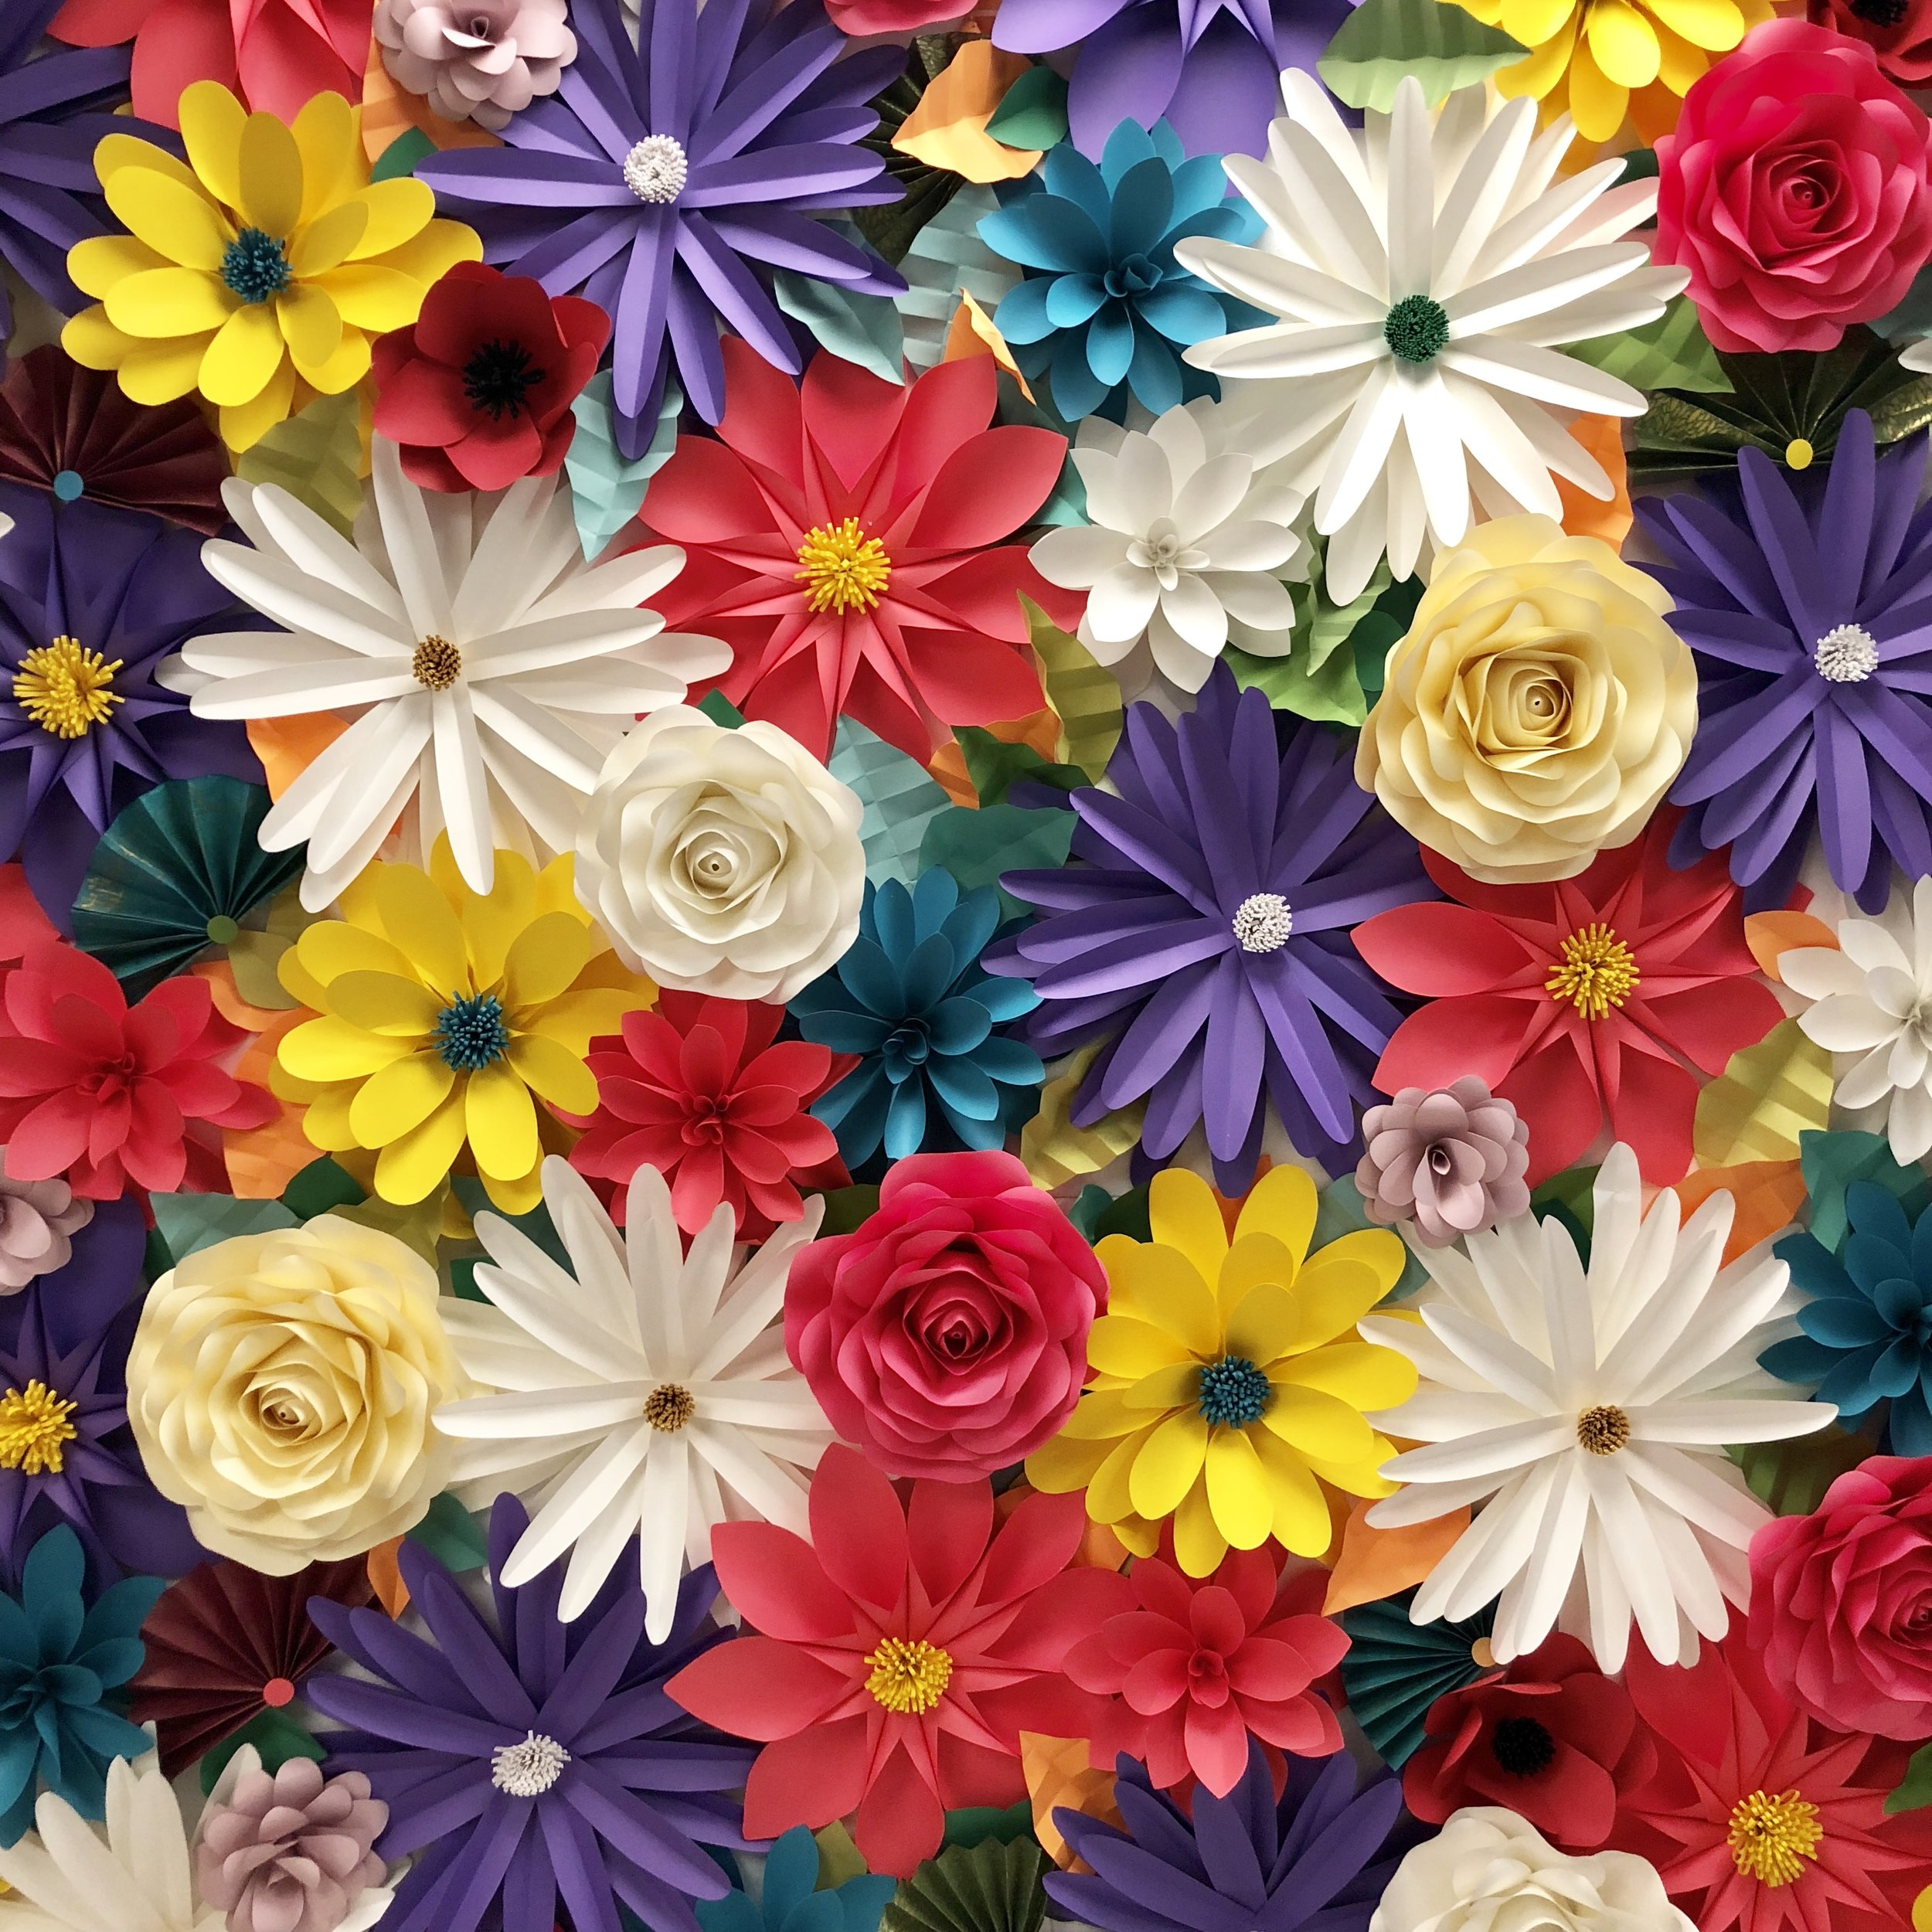 Clara  Multi-color filled with daisies, roses, dahlias & paper fans